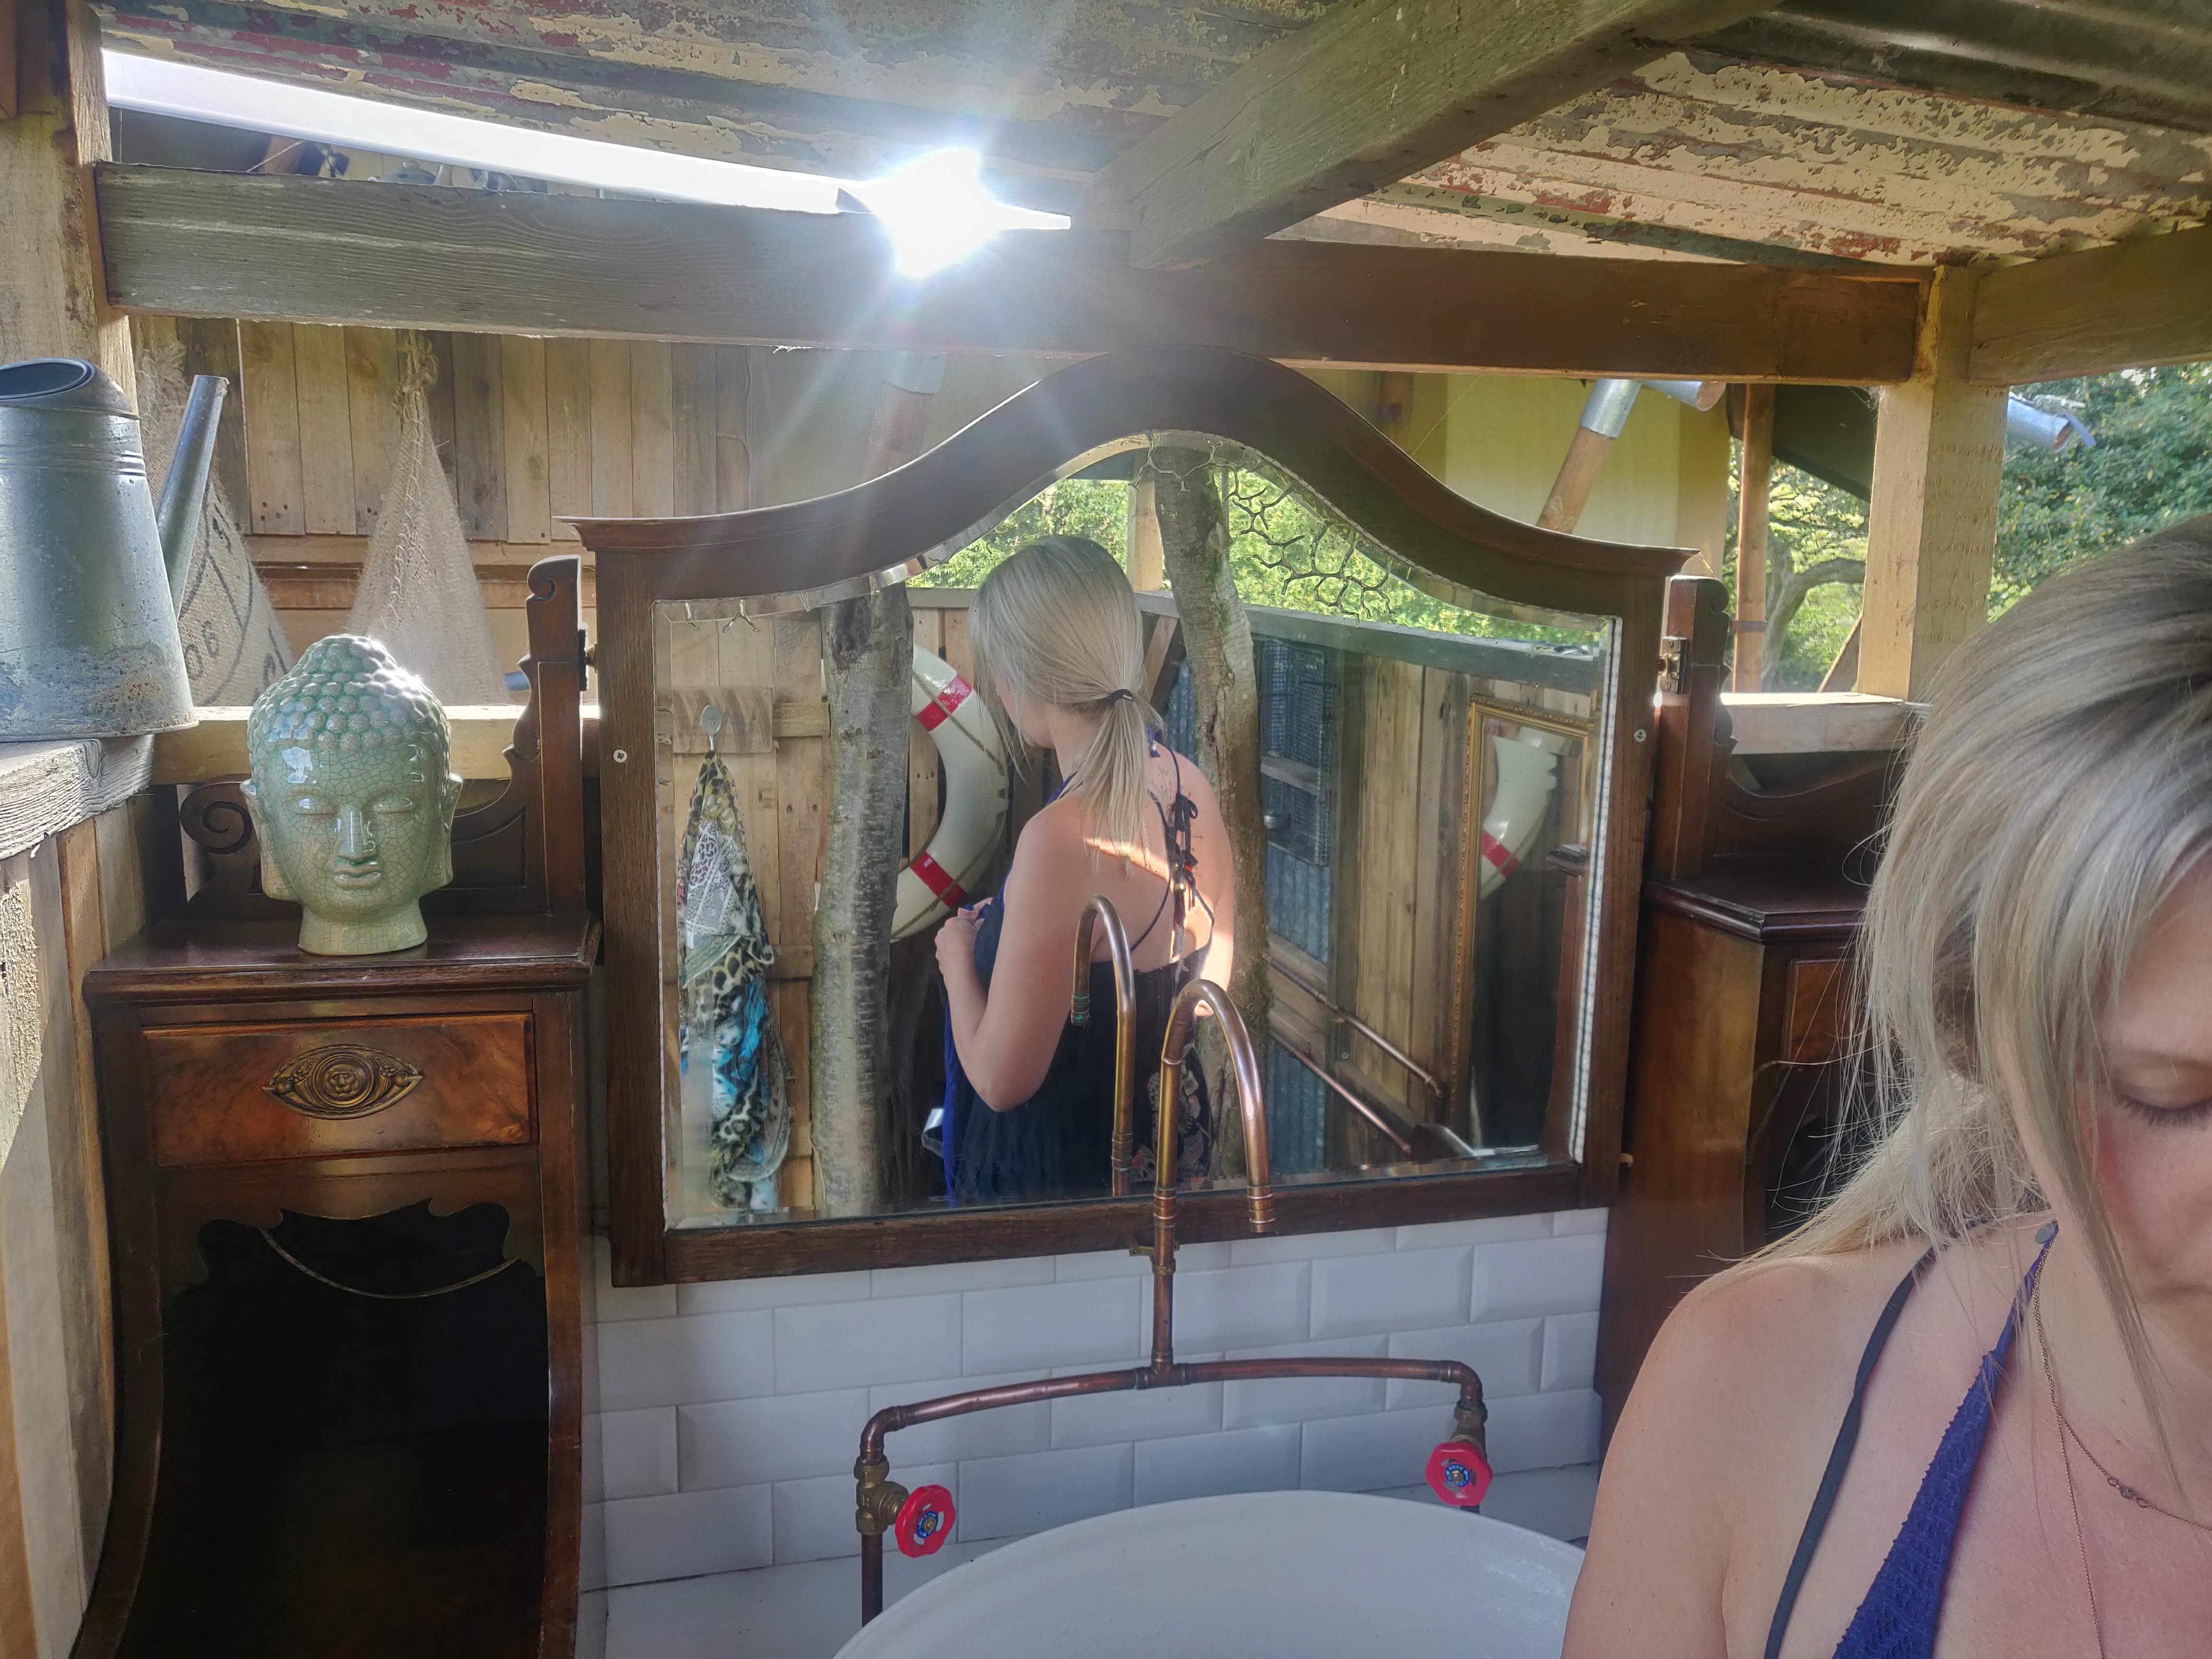 Girl taking a shower in our beautiful glamping bathroom